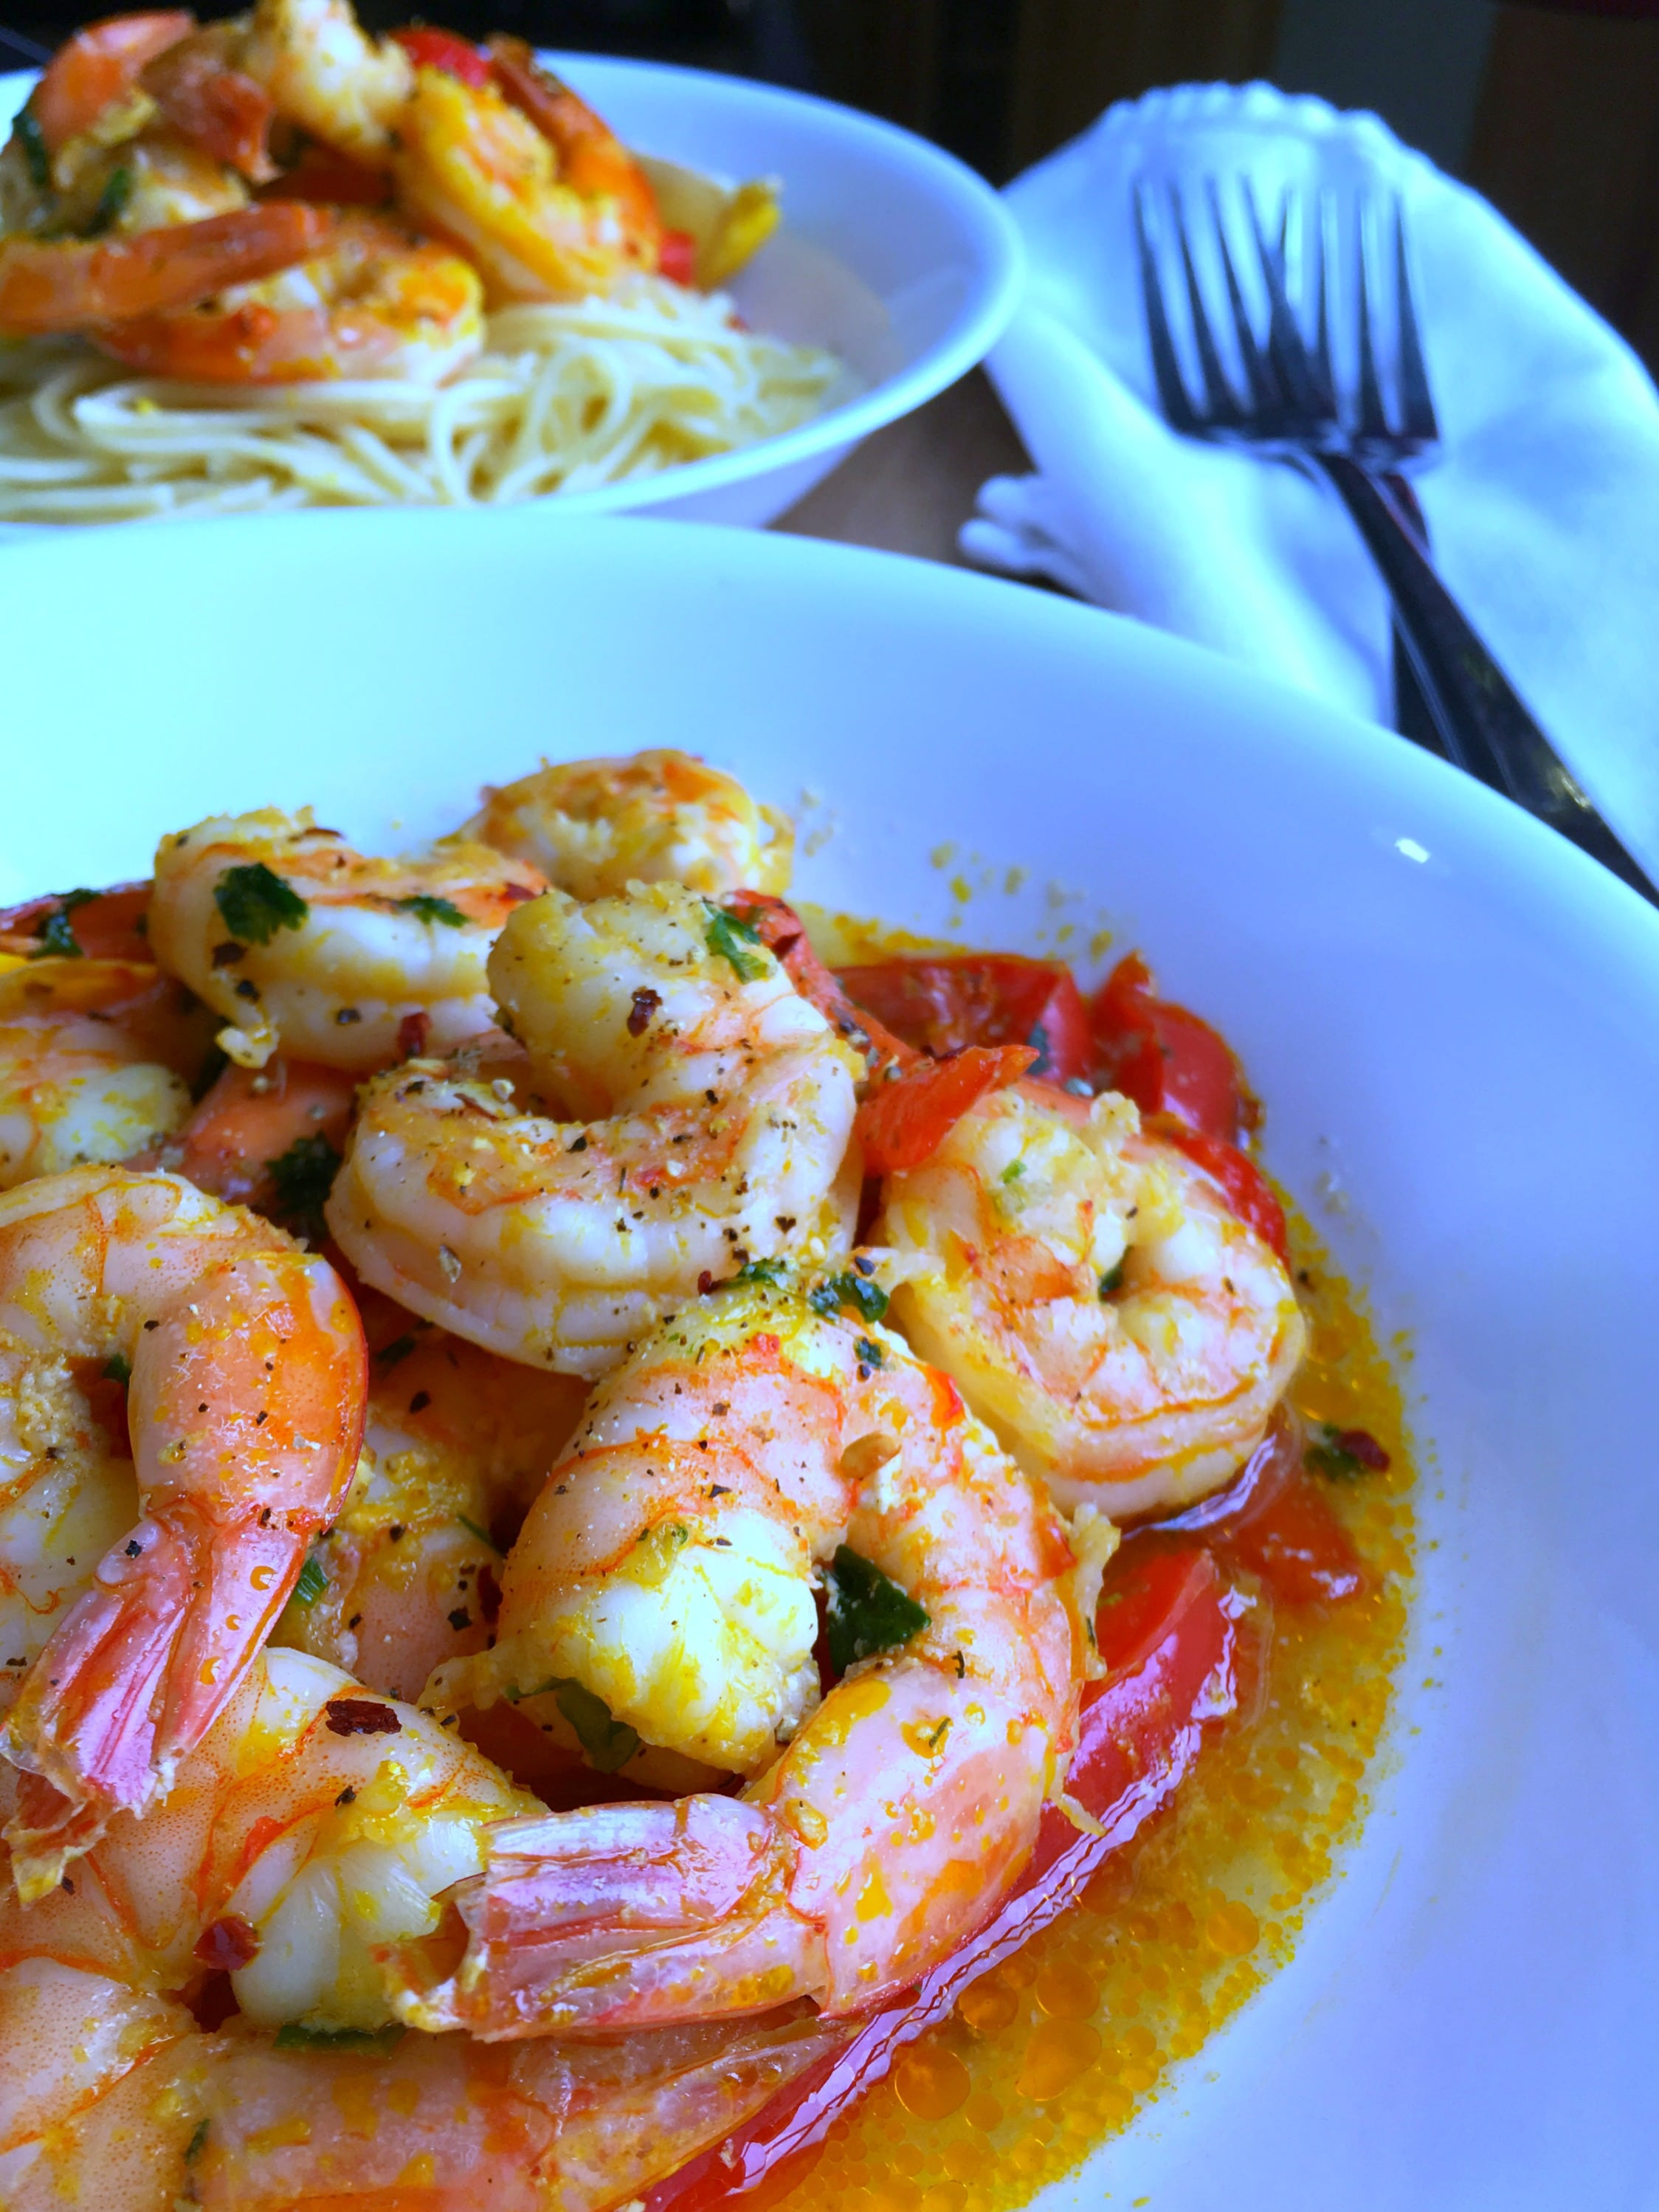 This flavorful Shrimp Stew dish is based on the original Brazilian recipe that I enjoyed growing up in Bahia